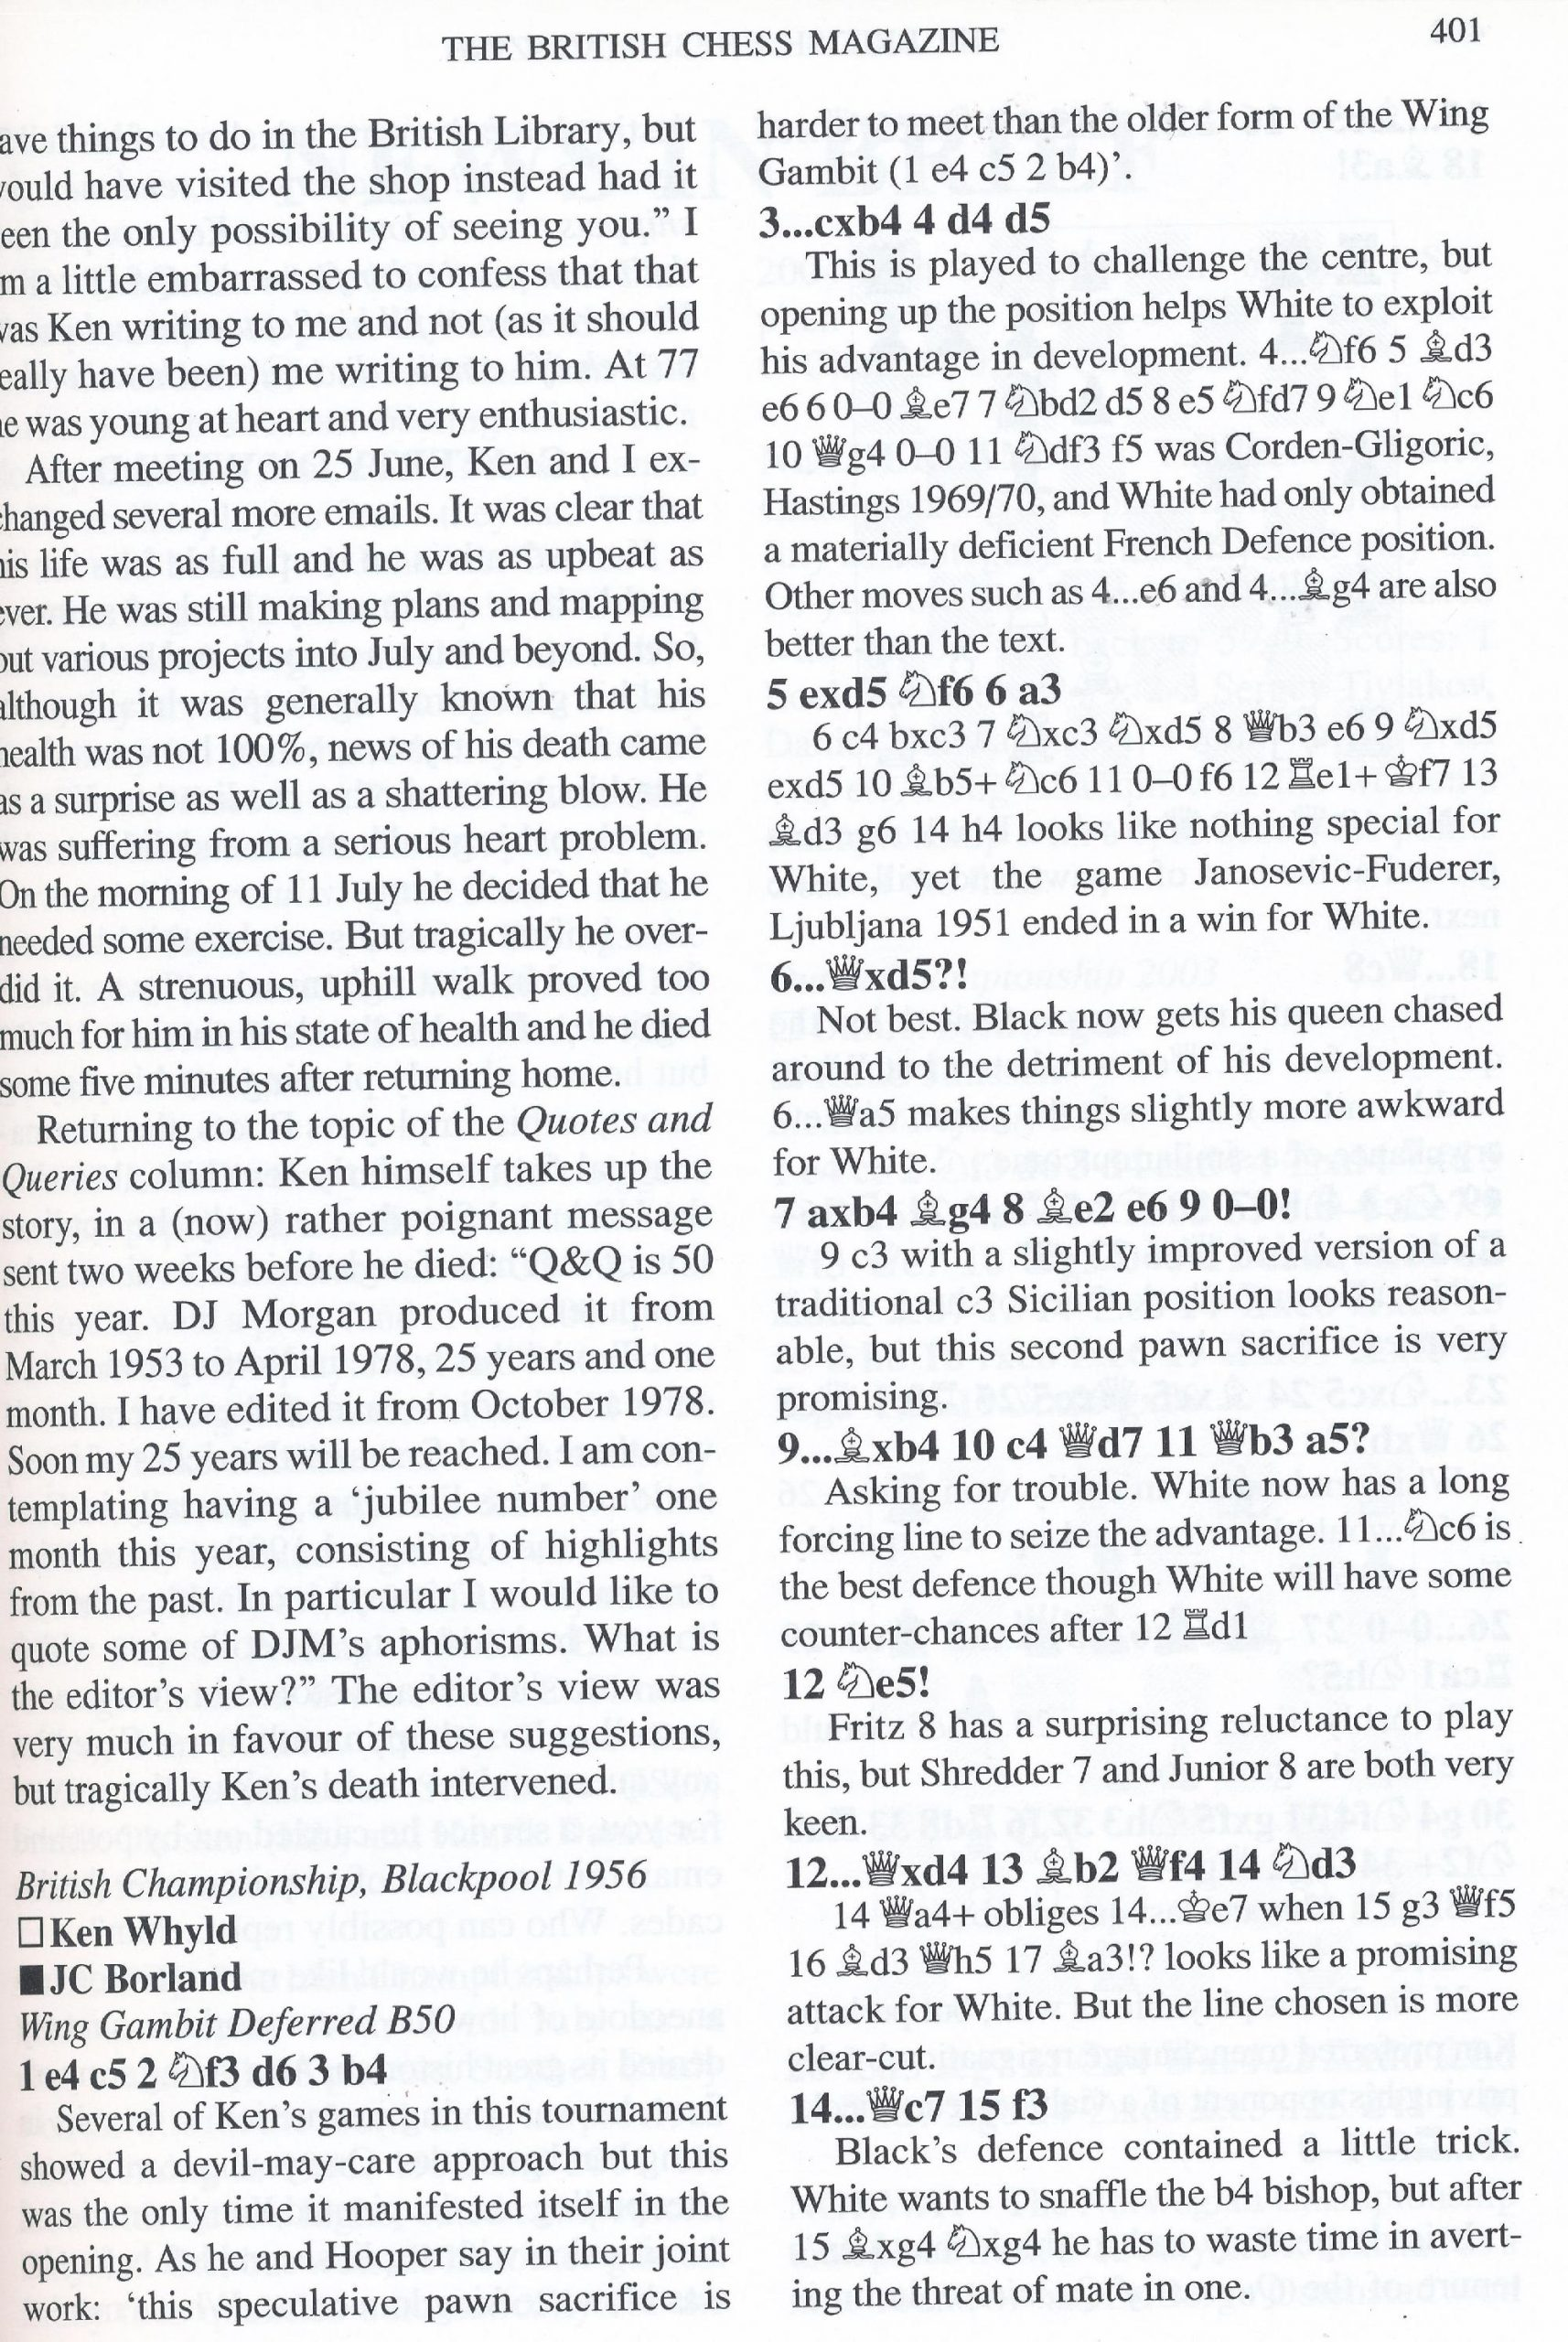 Ken Whyld Remembered from British Chess Magazine, Volume CXXIII (123), Number 8 (August), page 401 by Editor, John Saunders and Bernard Cafferty